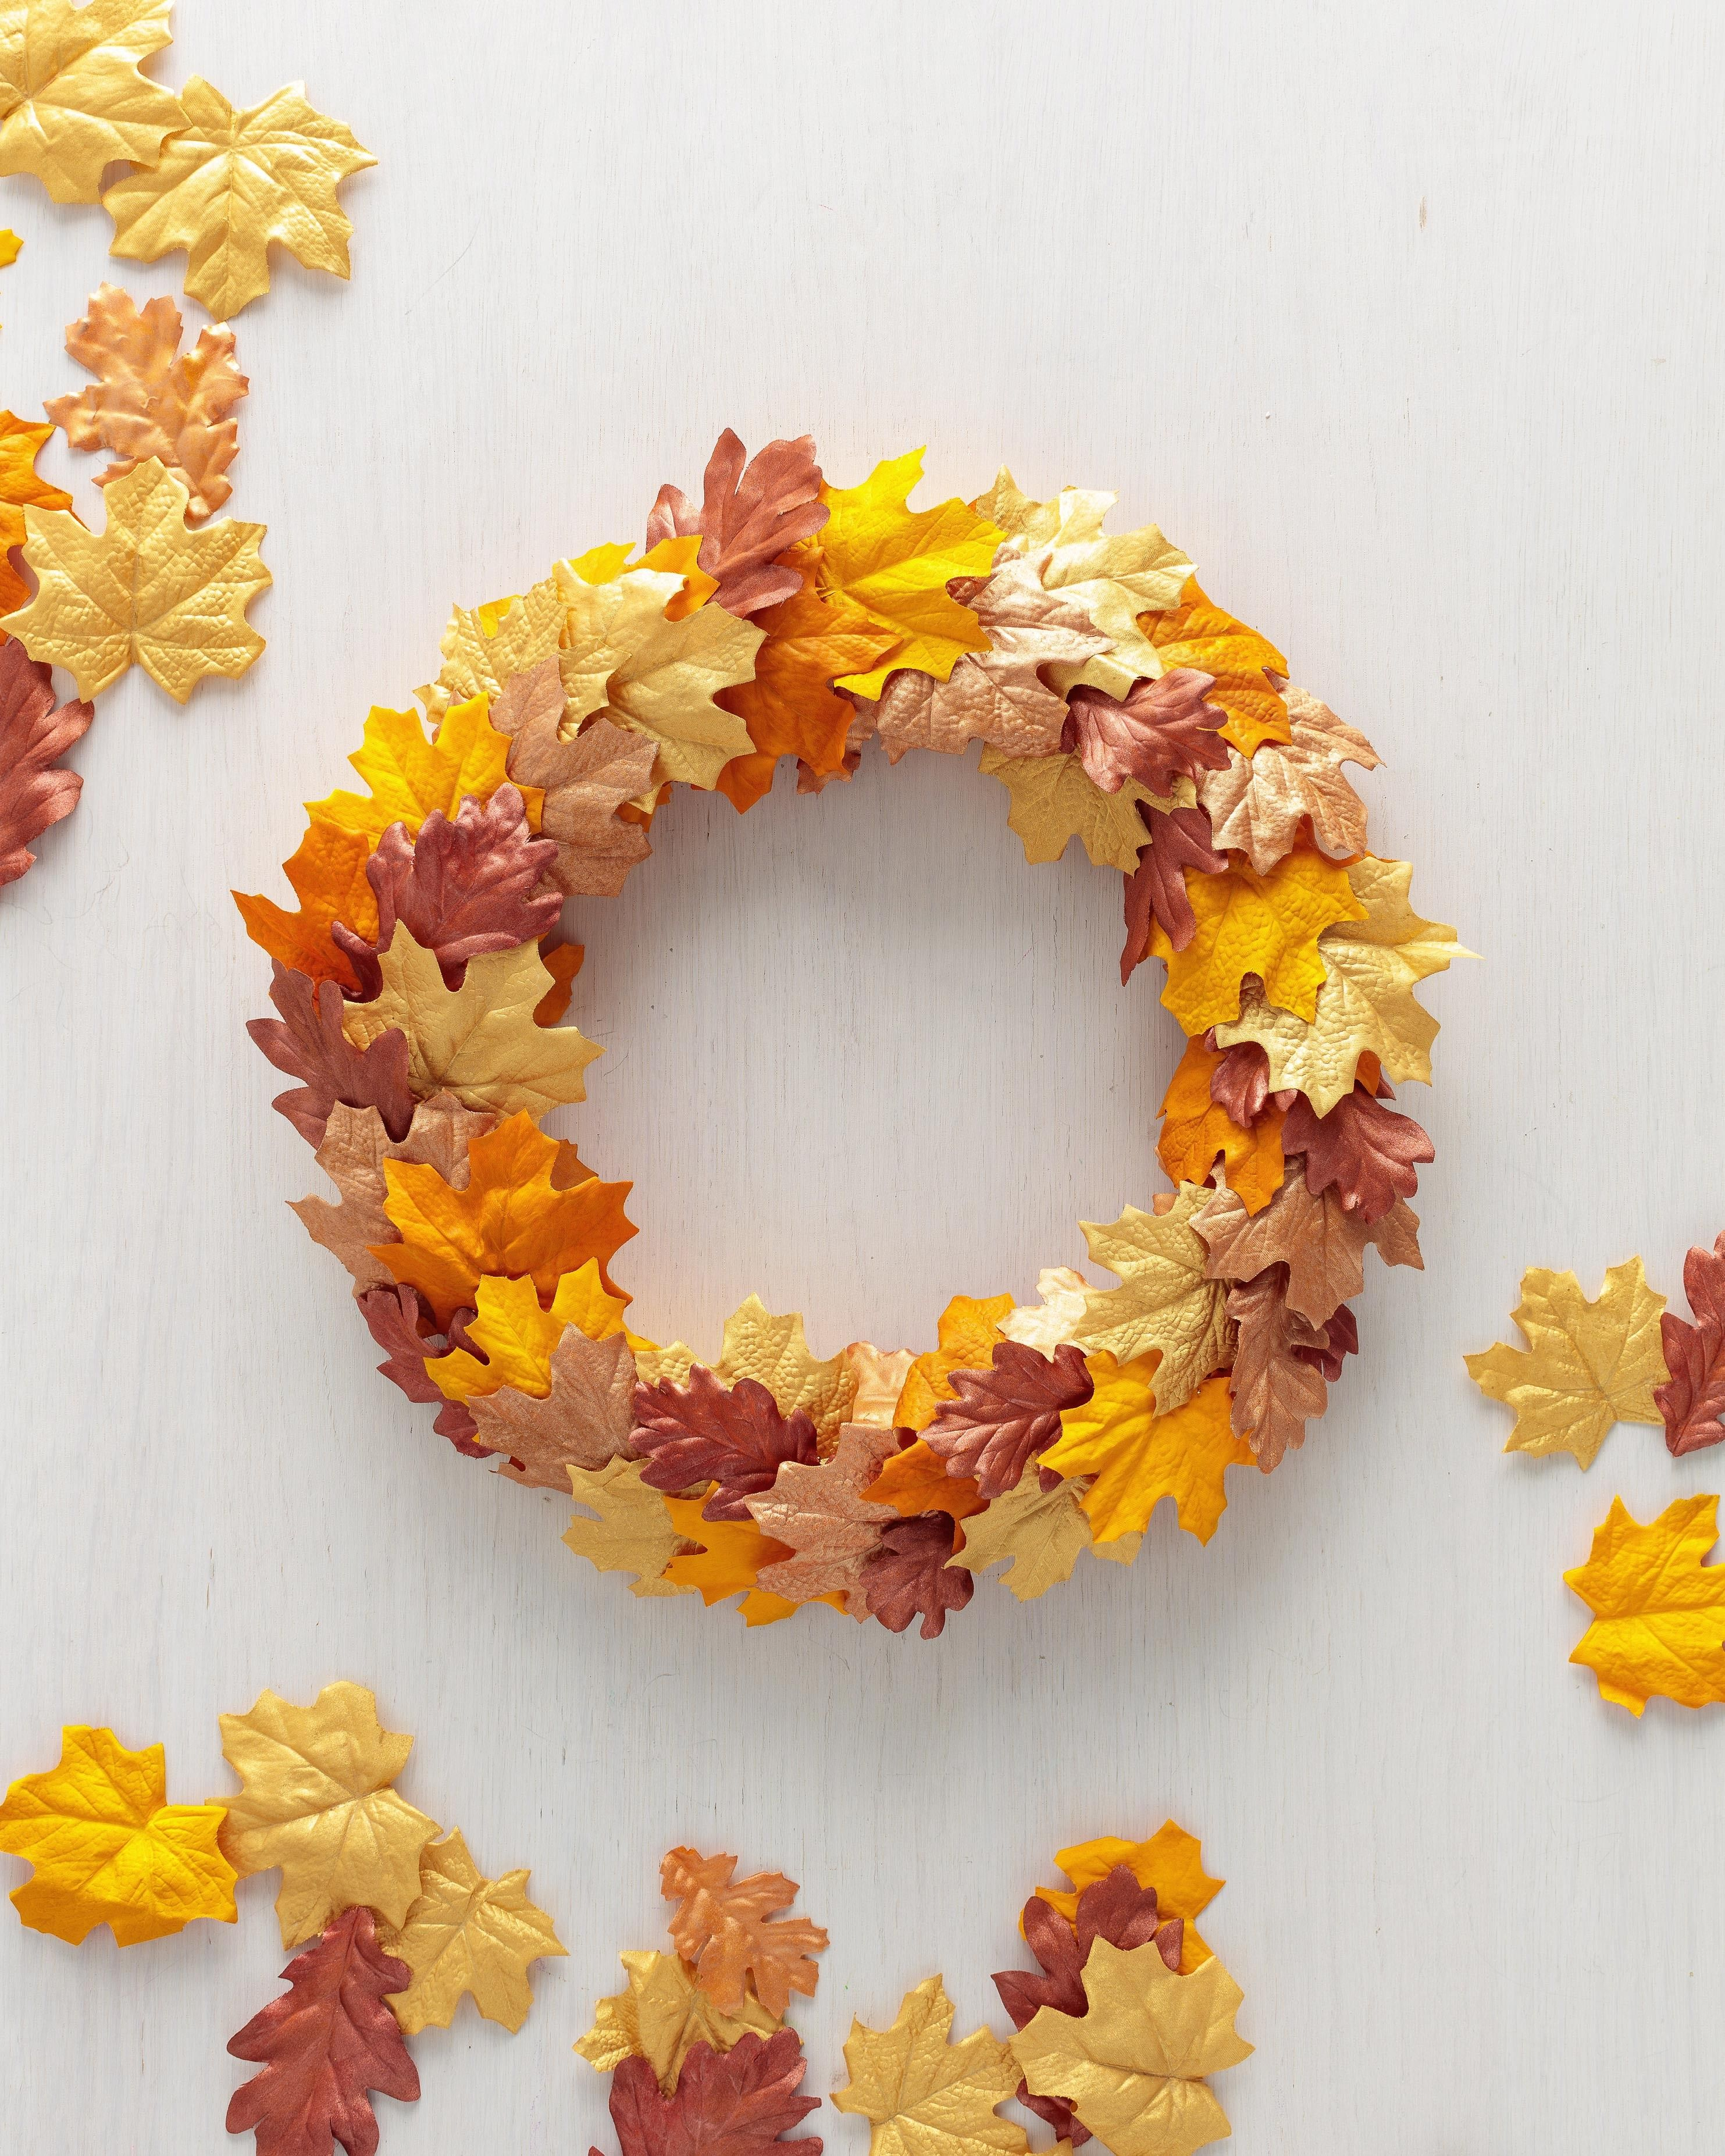 12 Leaf Crafts That Celebrate All The Colors Of Fall Wreaths Diy Wreath Autumn Leaves Craft